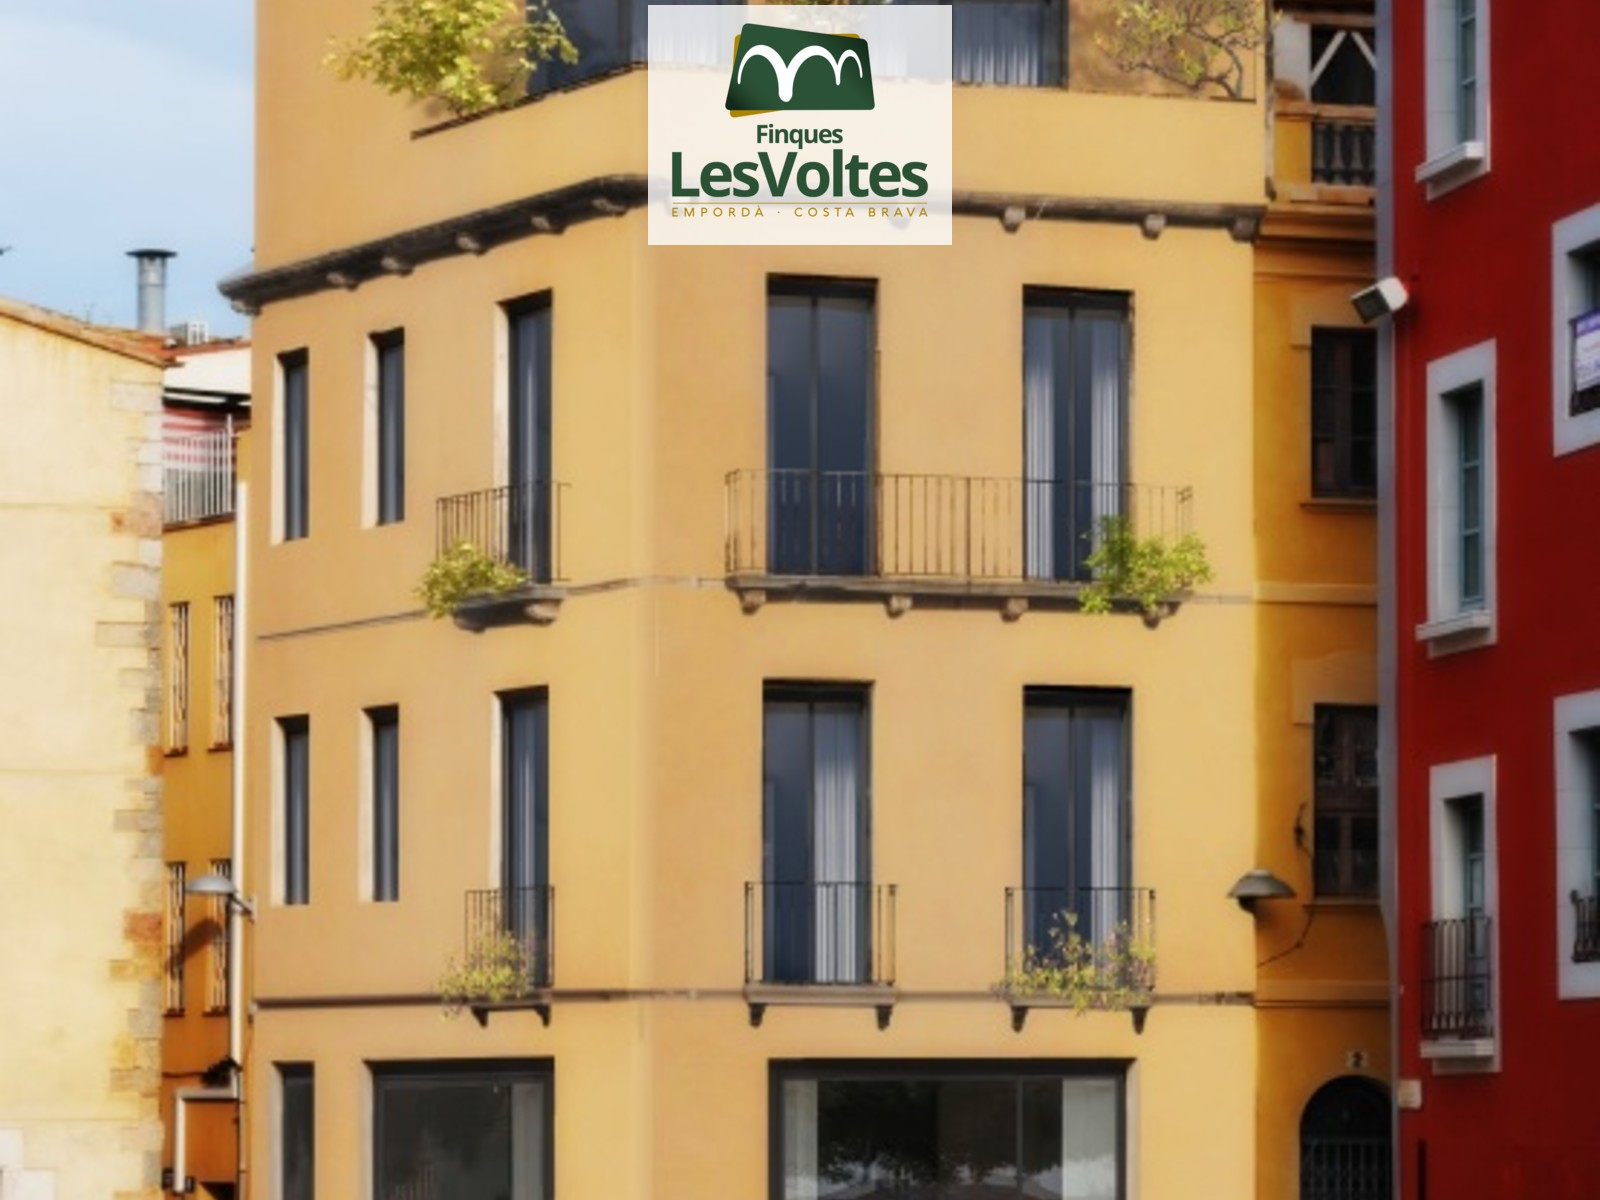 MAGNIFICENT CHARMING BUILDING FOR SALE IN THE PALAFRUGELL PEDESTRIAN CENTER. SINGULAR PROPERTY FOR INTEGRAL REFORM WITH MANY